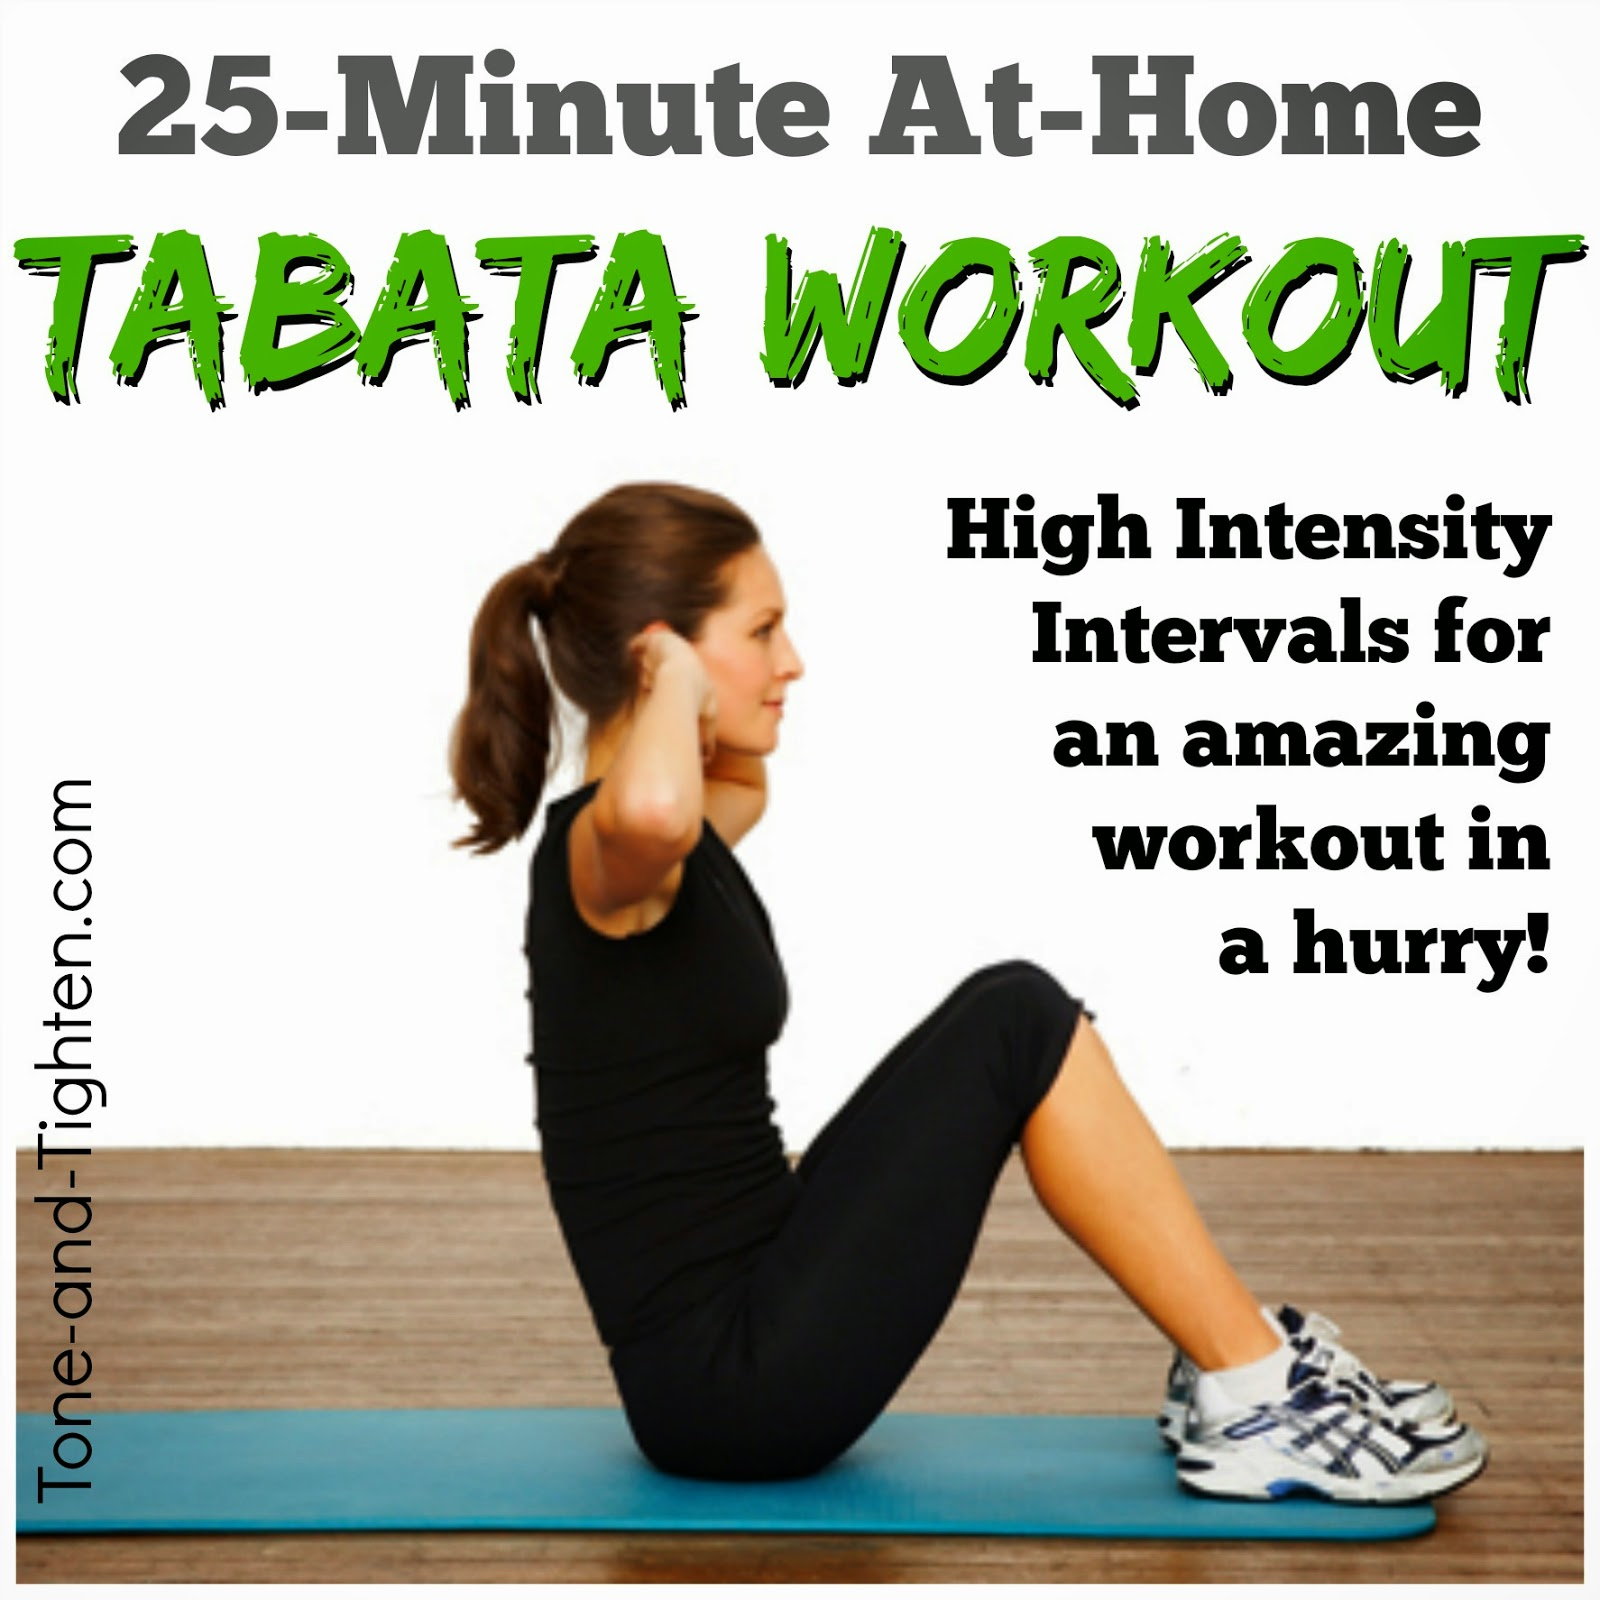 20 Minute At Home Cardio Workout 20 Minute At Home Cardio Strength Workout My Favorite